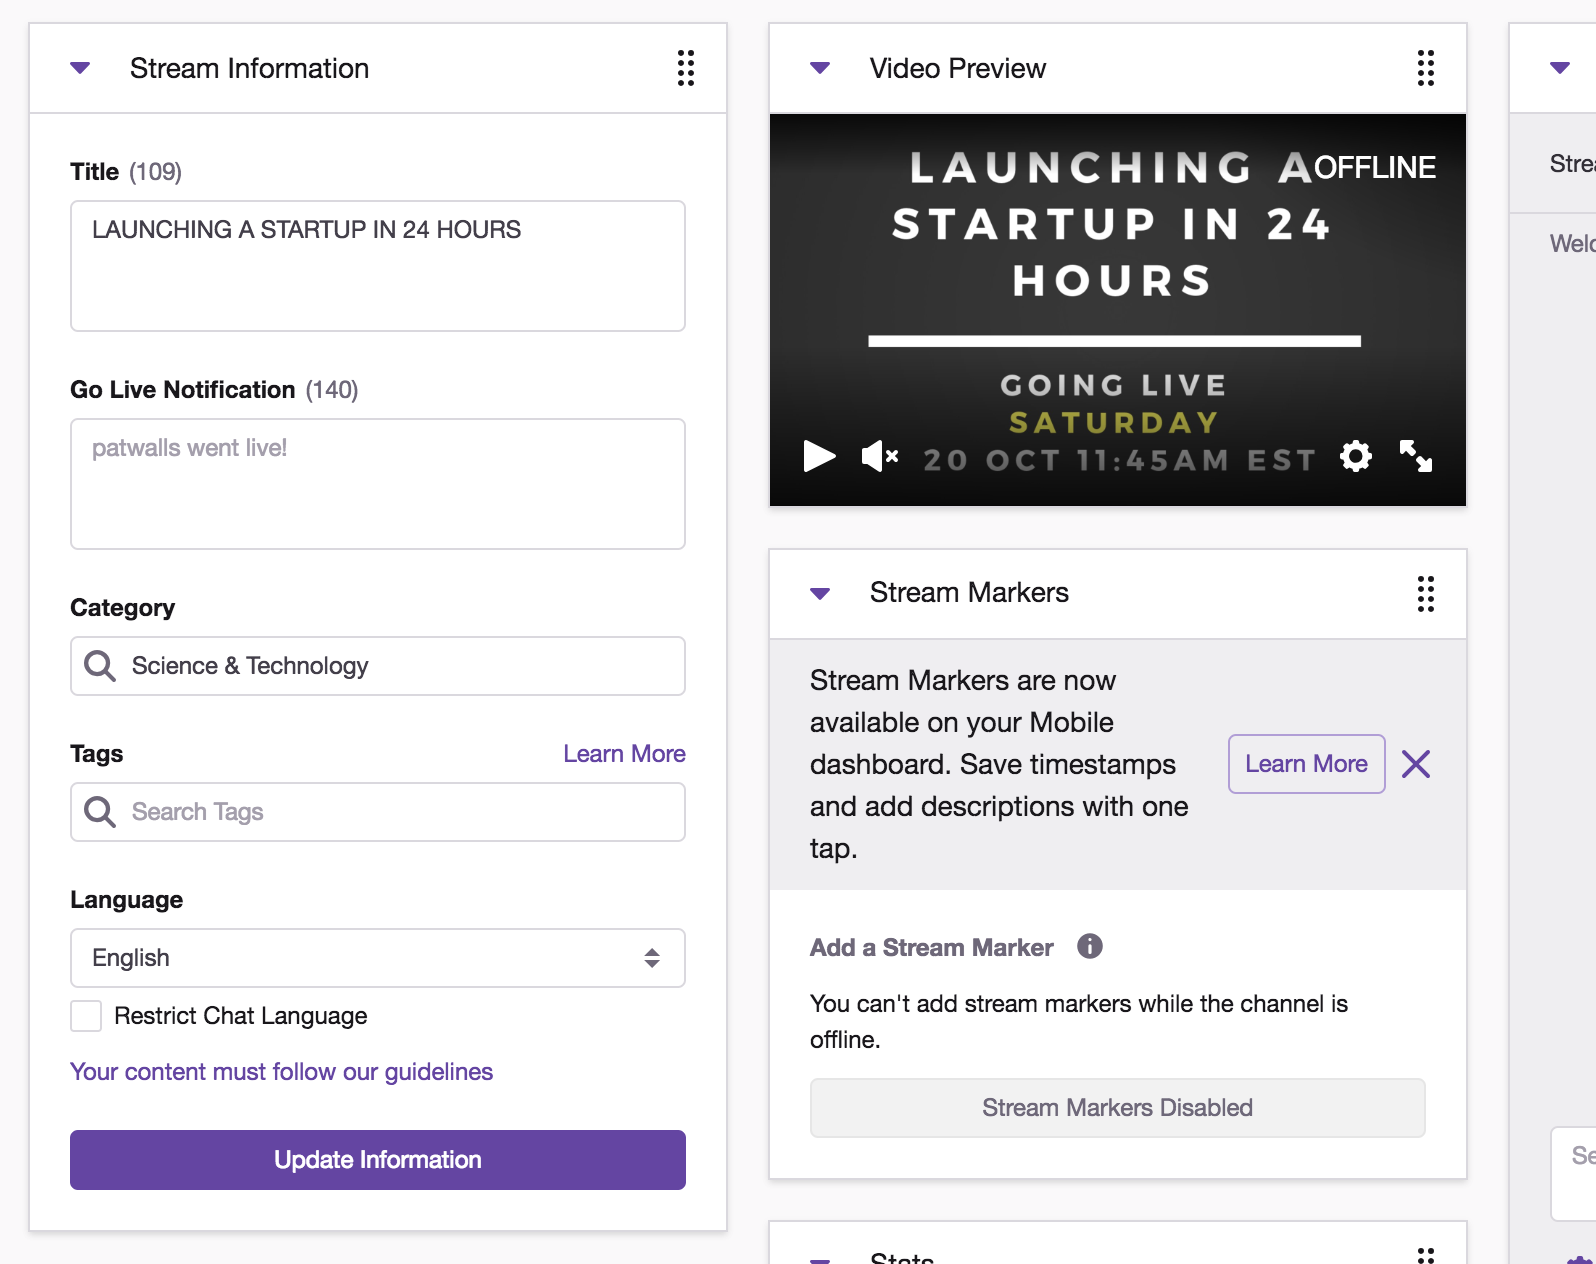 Recommended Twitch Streaming Setup Guide - 24hrstartup com